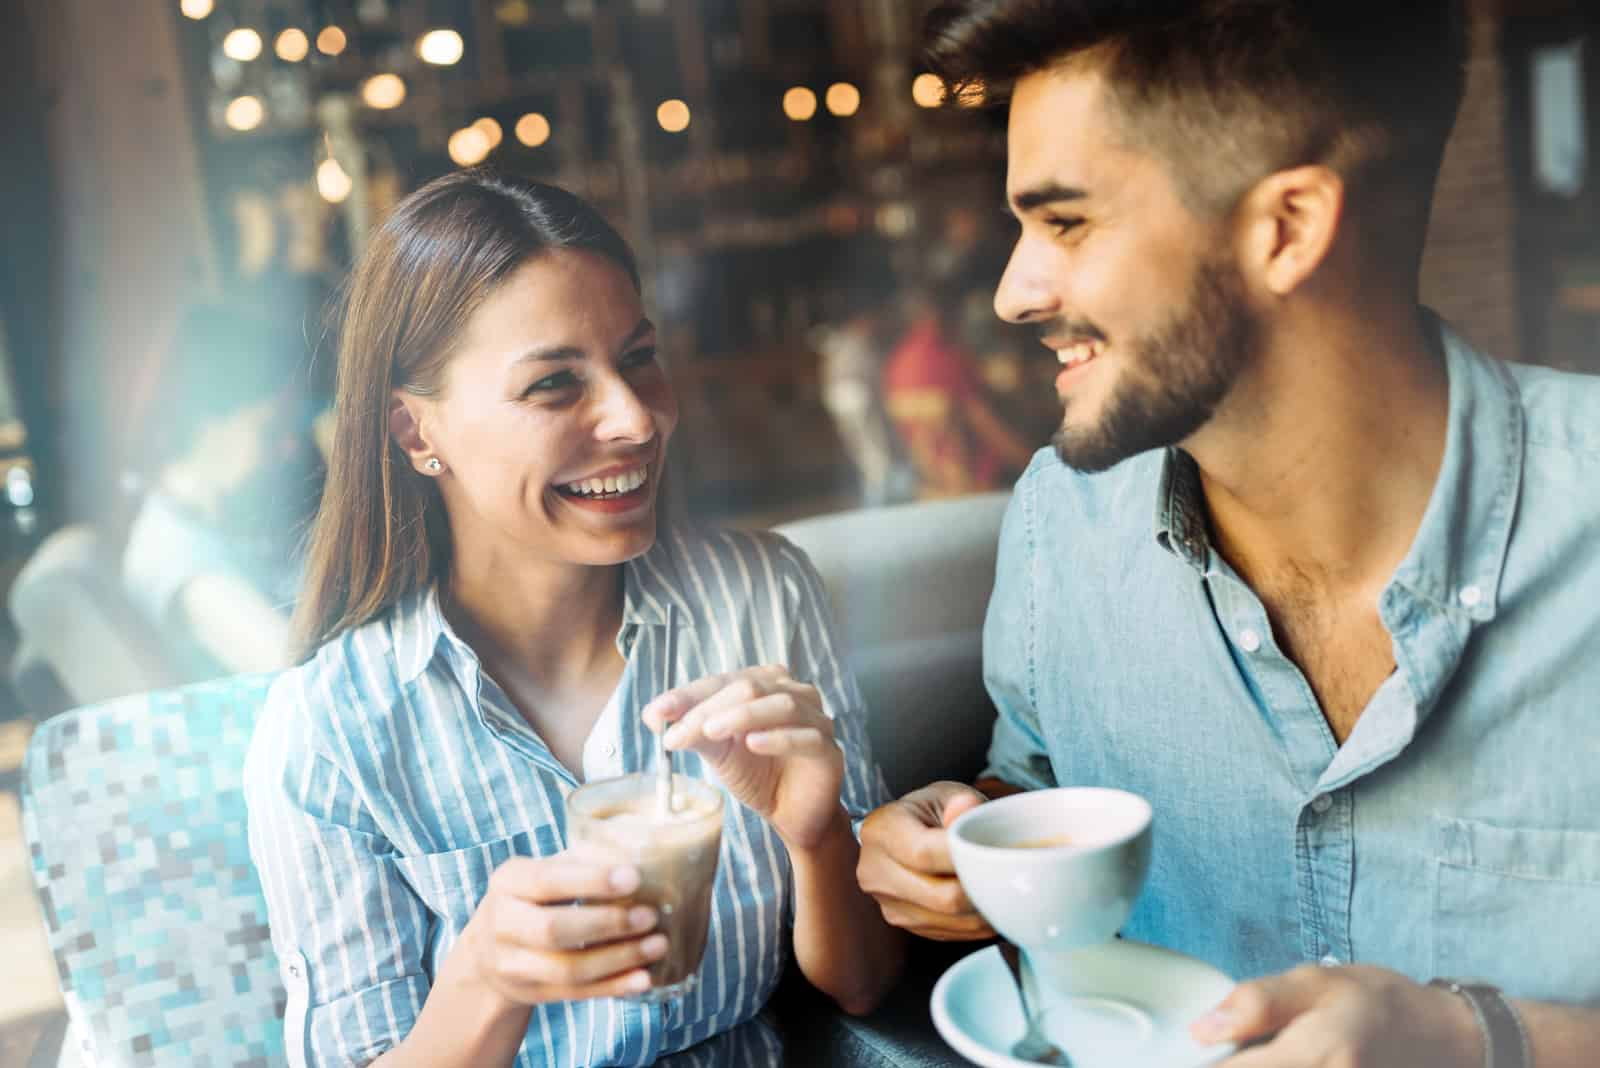 a smiling man and woman sitting at a table drinking coffee